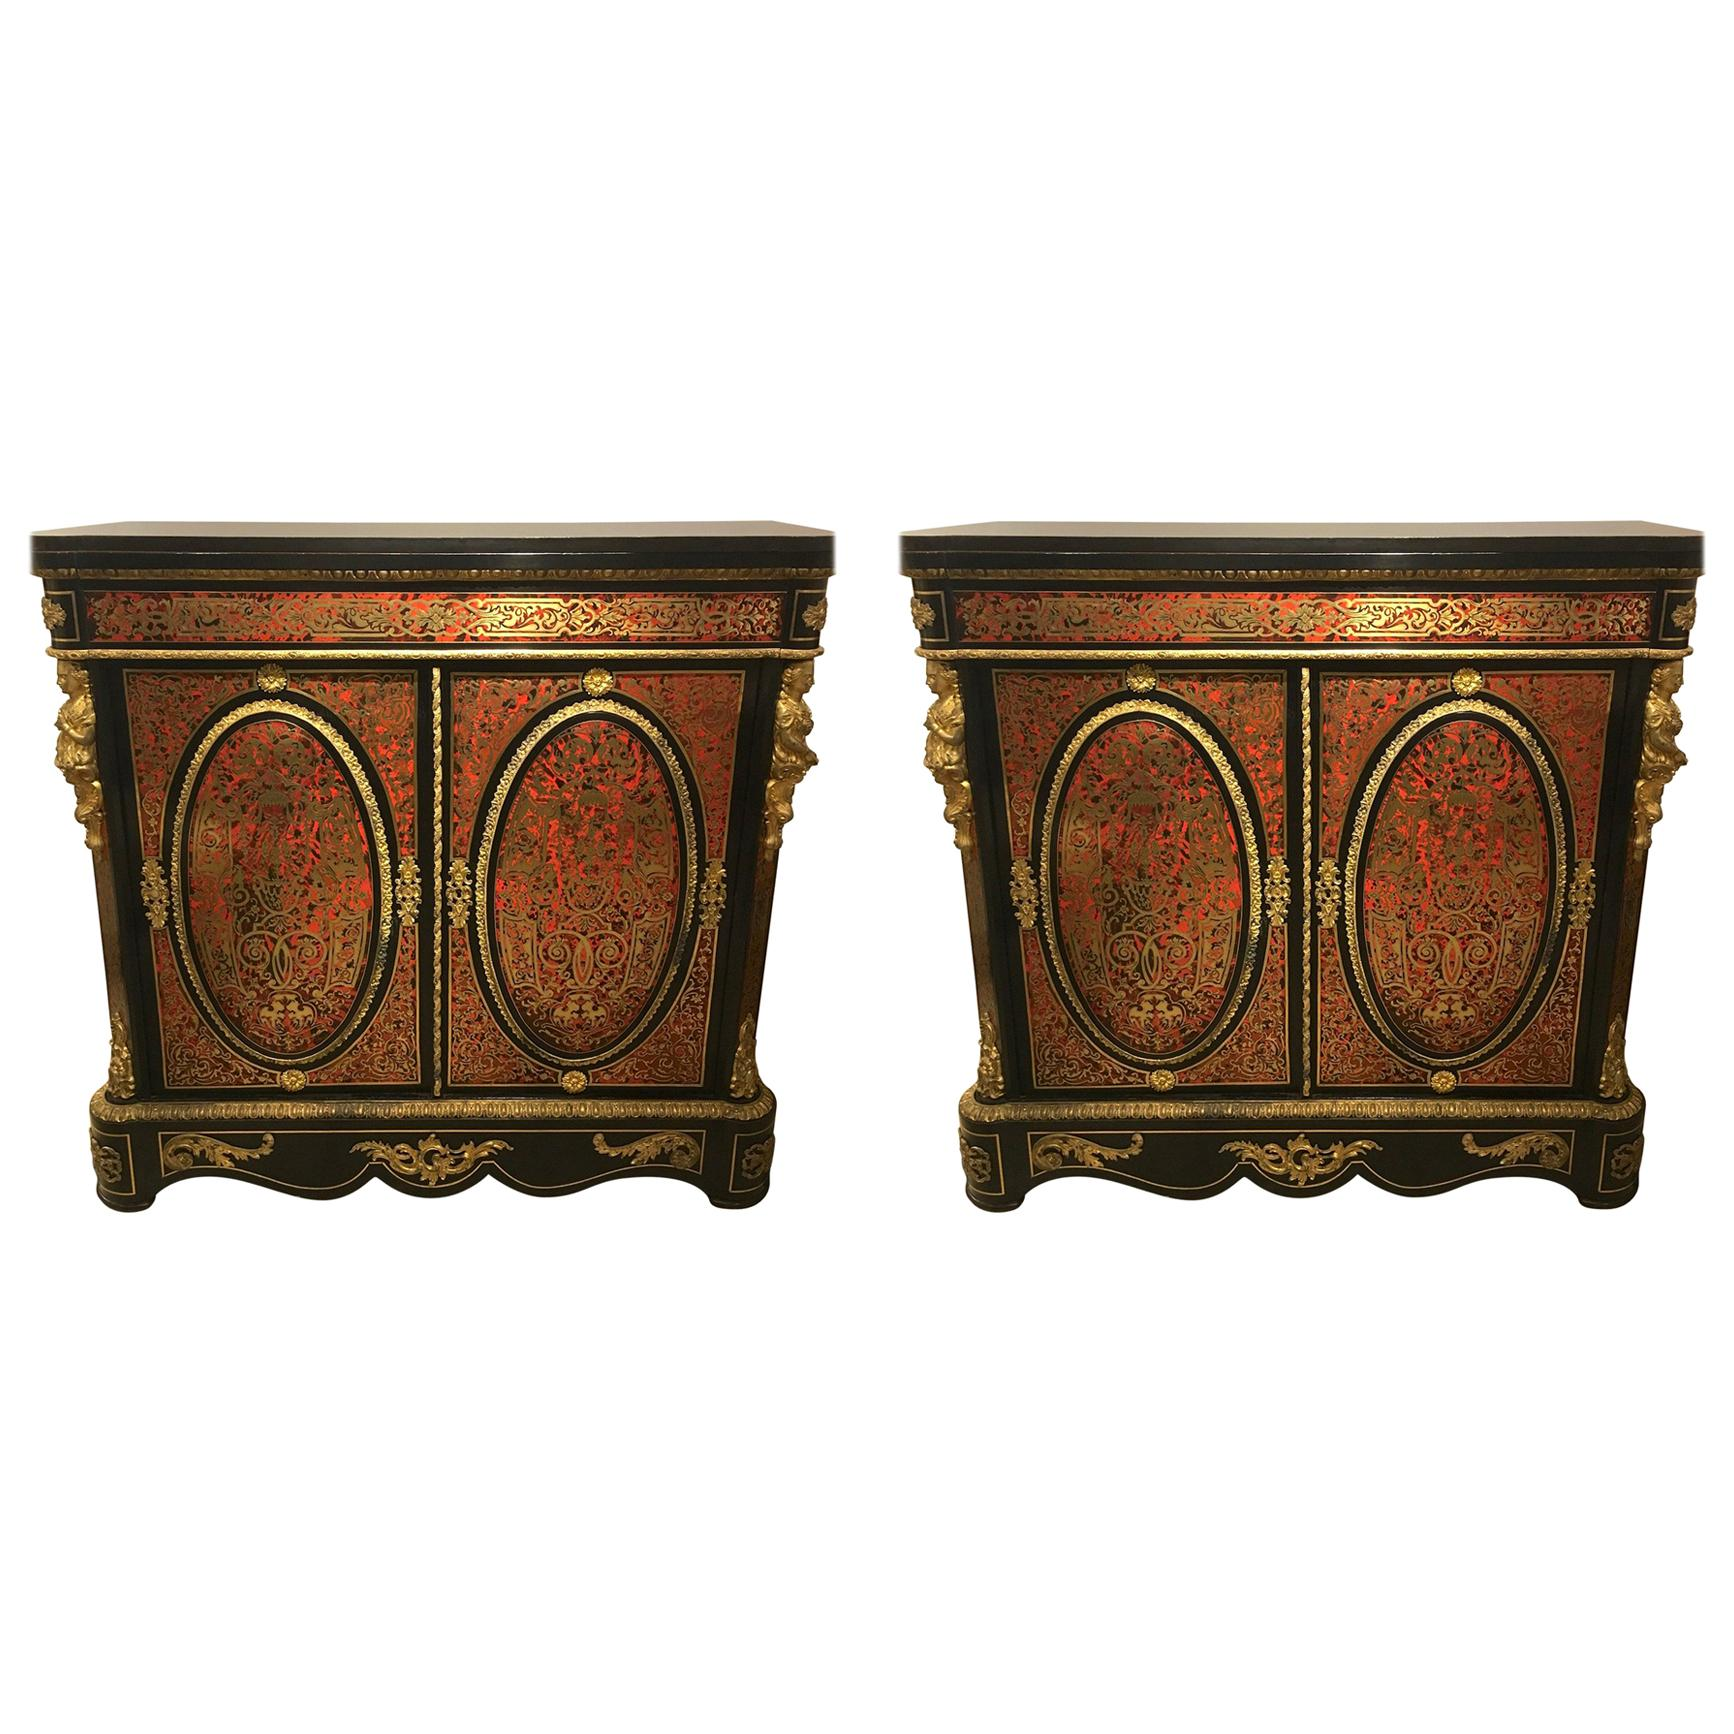 Pair of André-Charles Boulle Style Cabinets, 19th Century